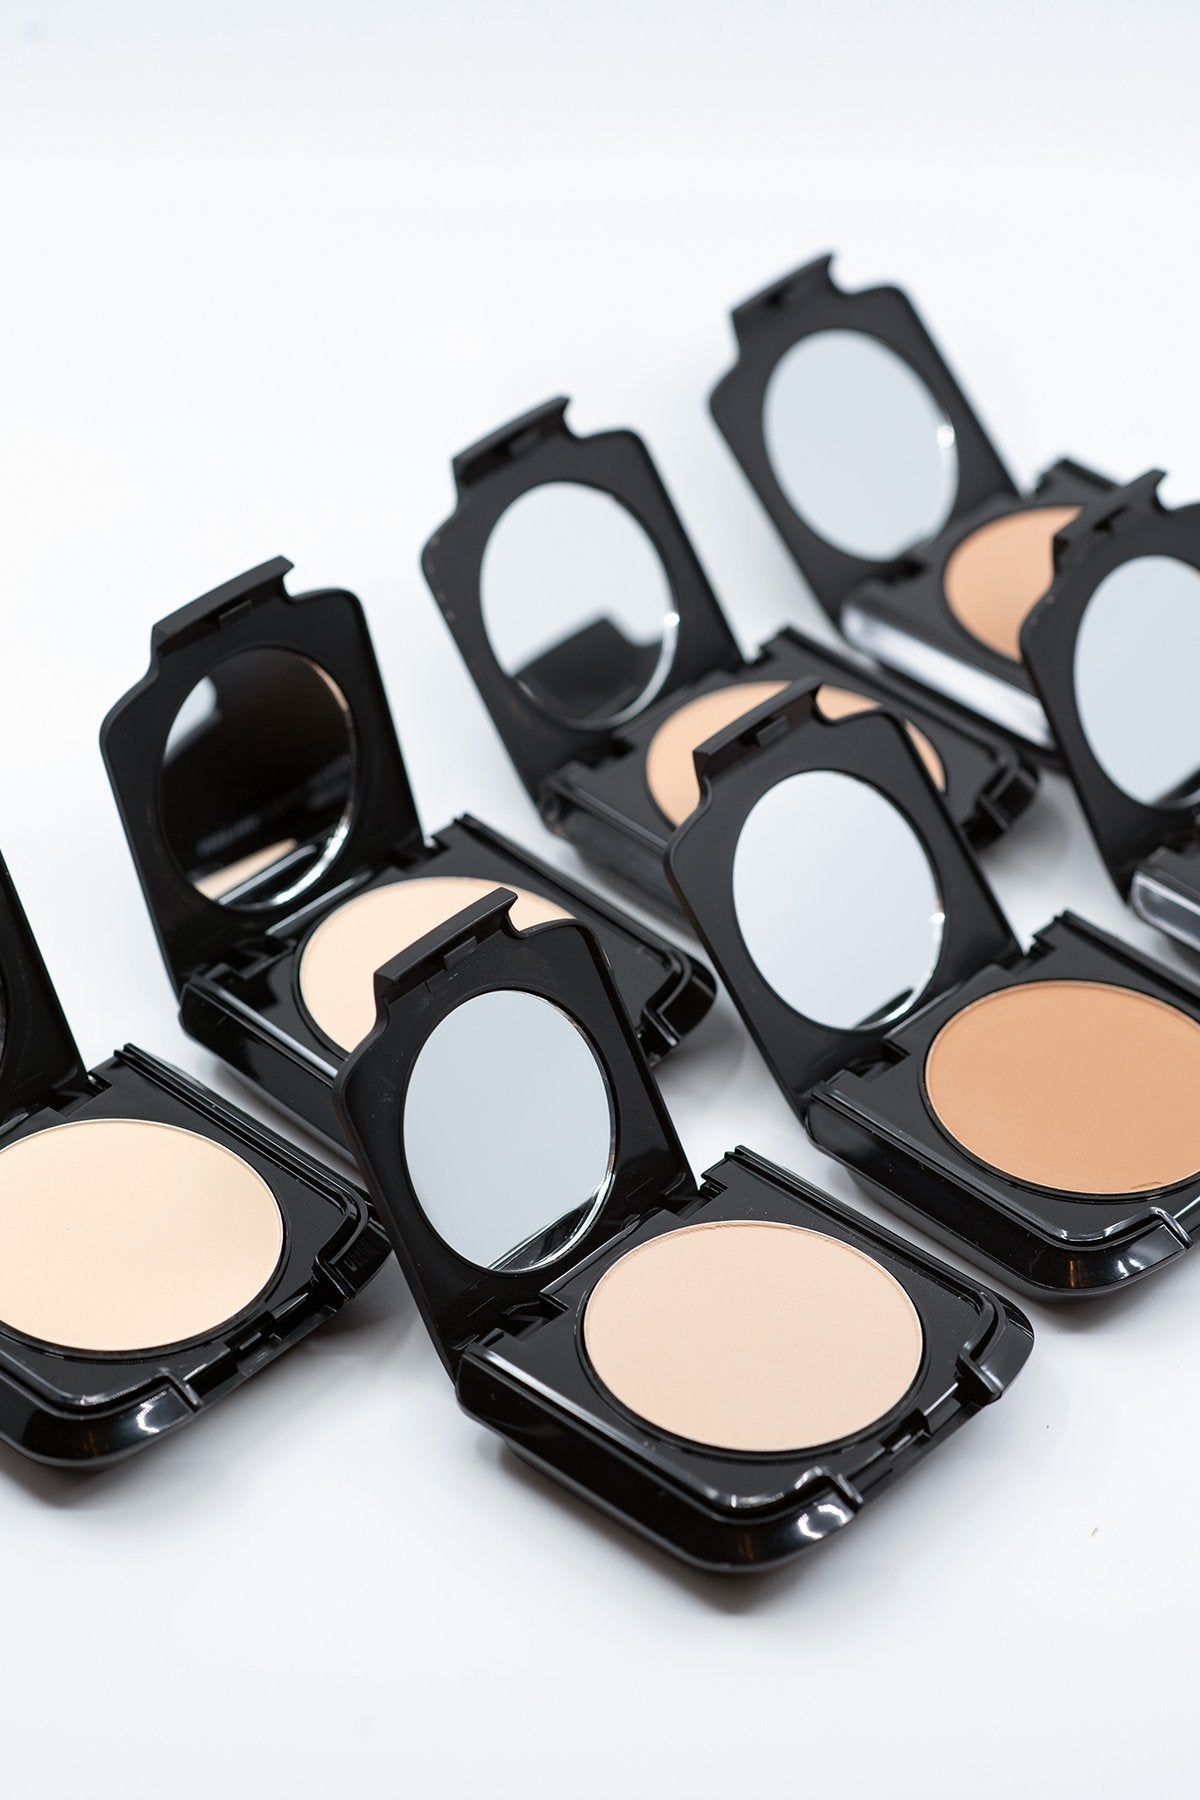 Wet Dry Powder Foundation-44, FACE - shopdyi.com